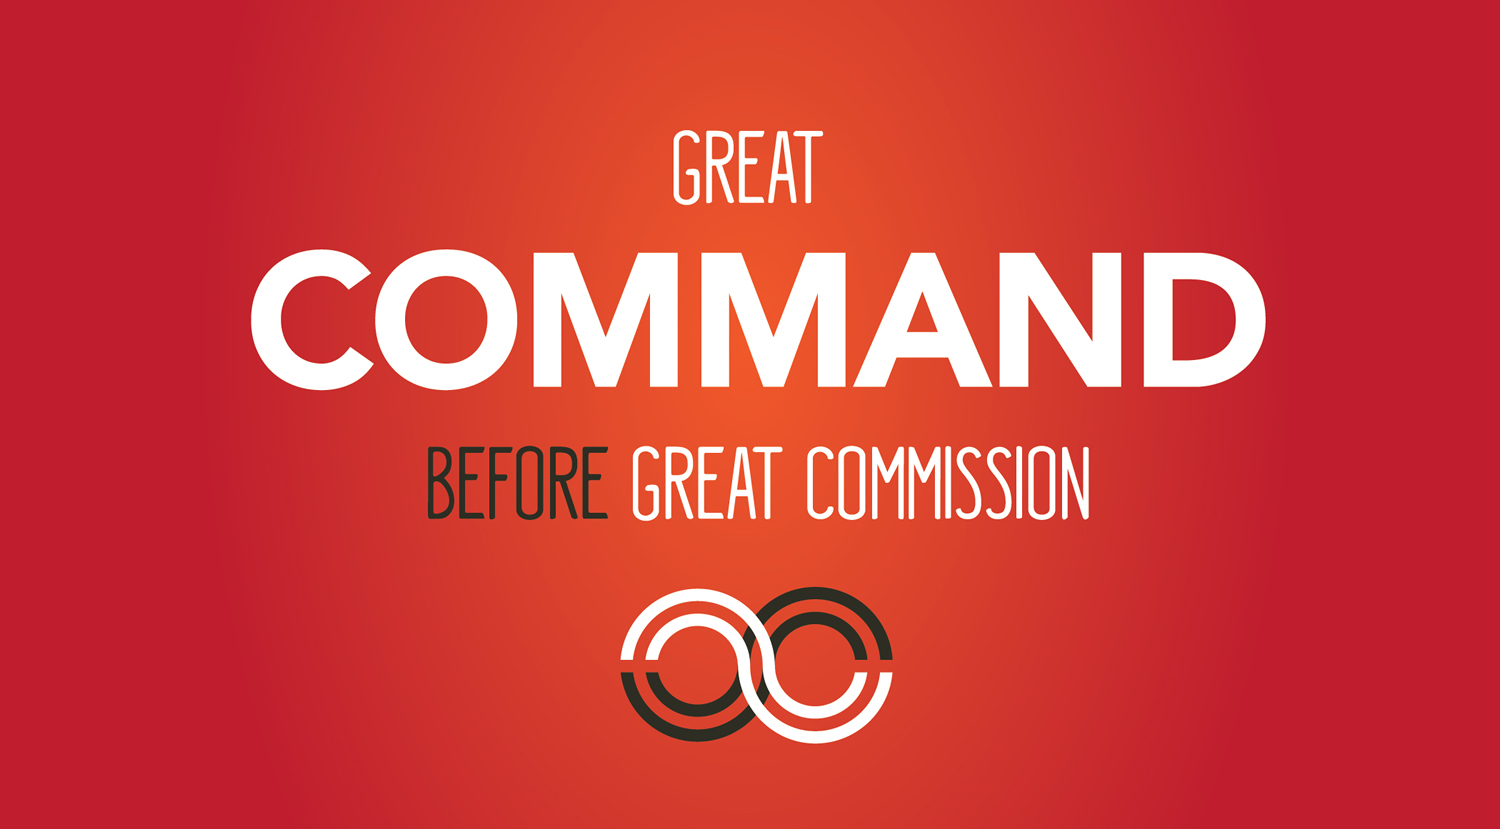 Great Command Before Great Commission